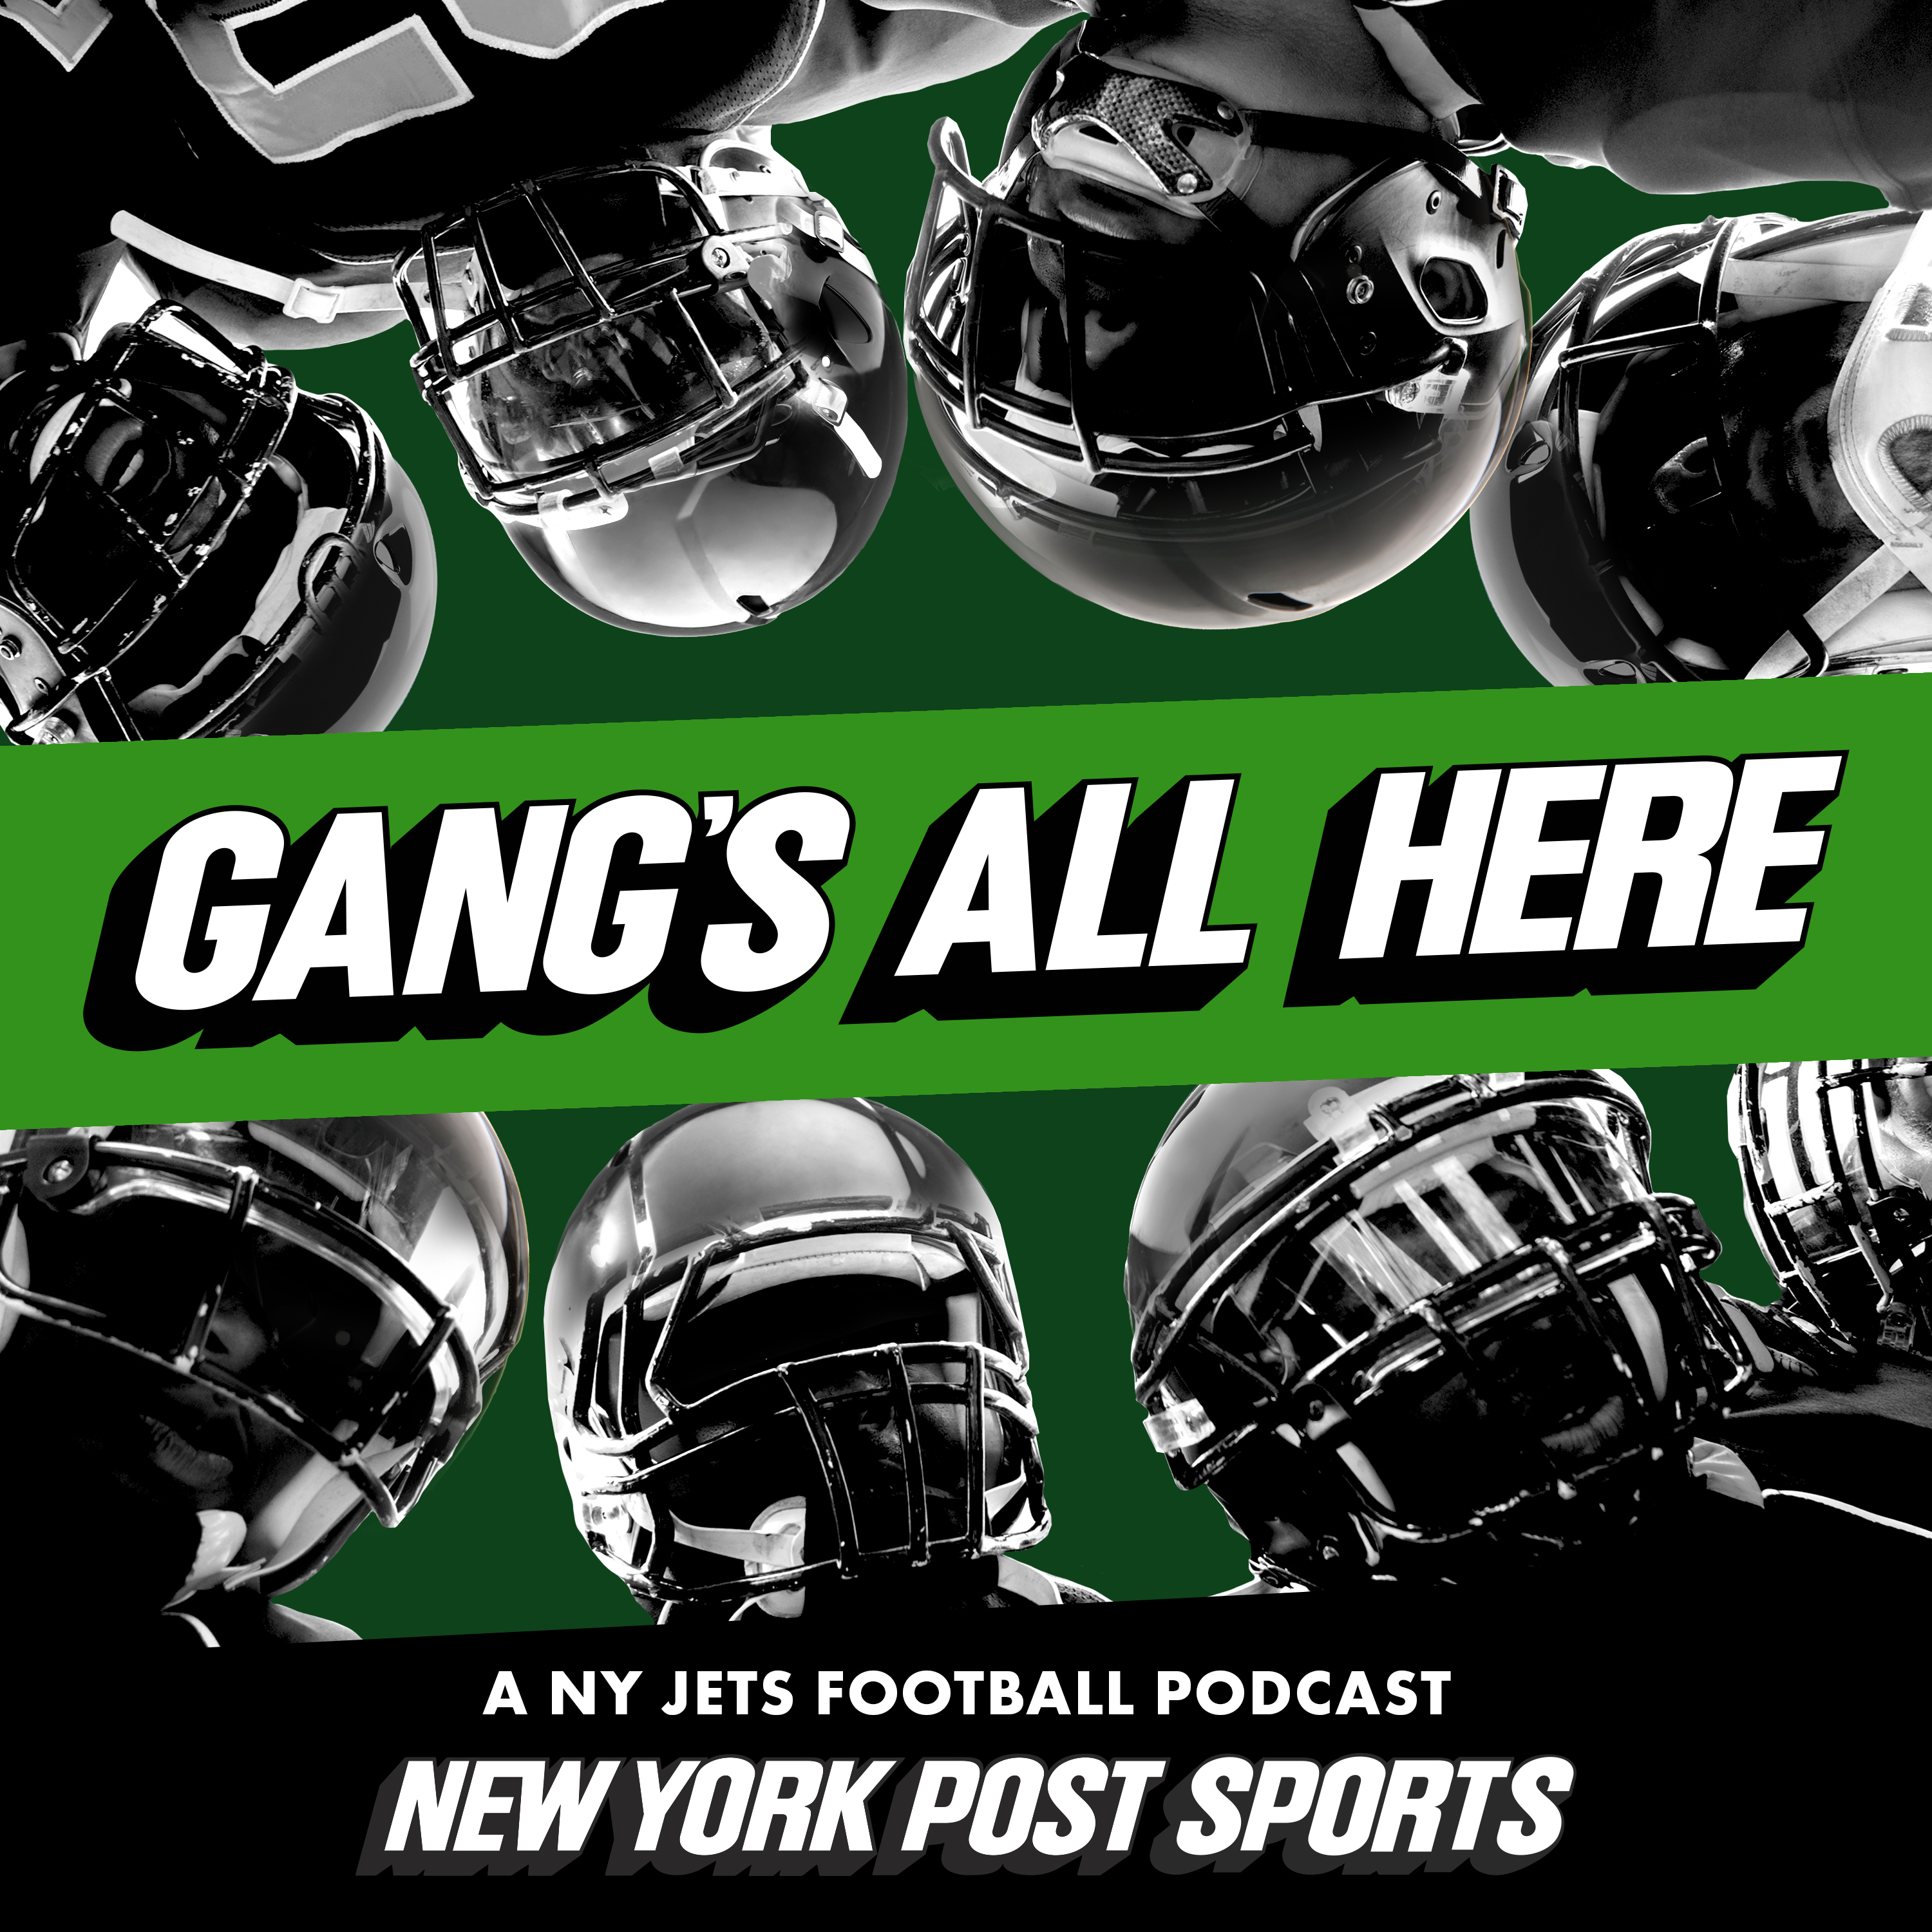 Gang's All Here: A NY Jets Football Podcast From New York